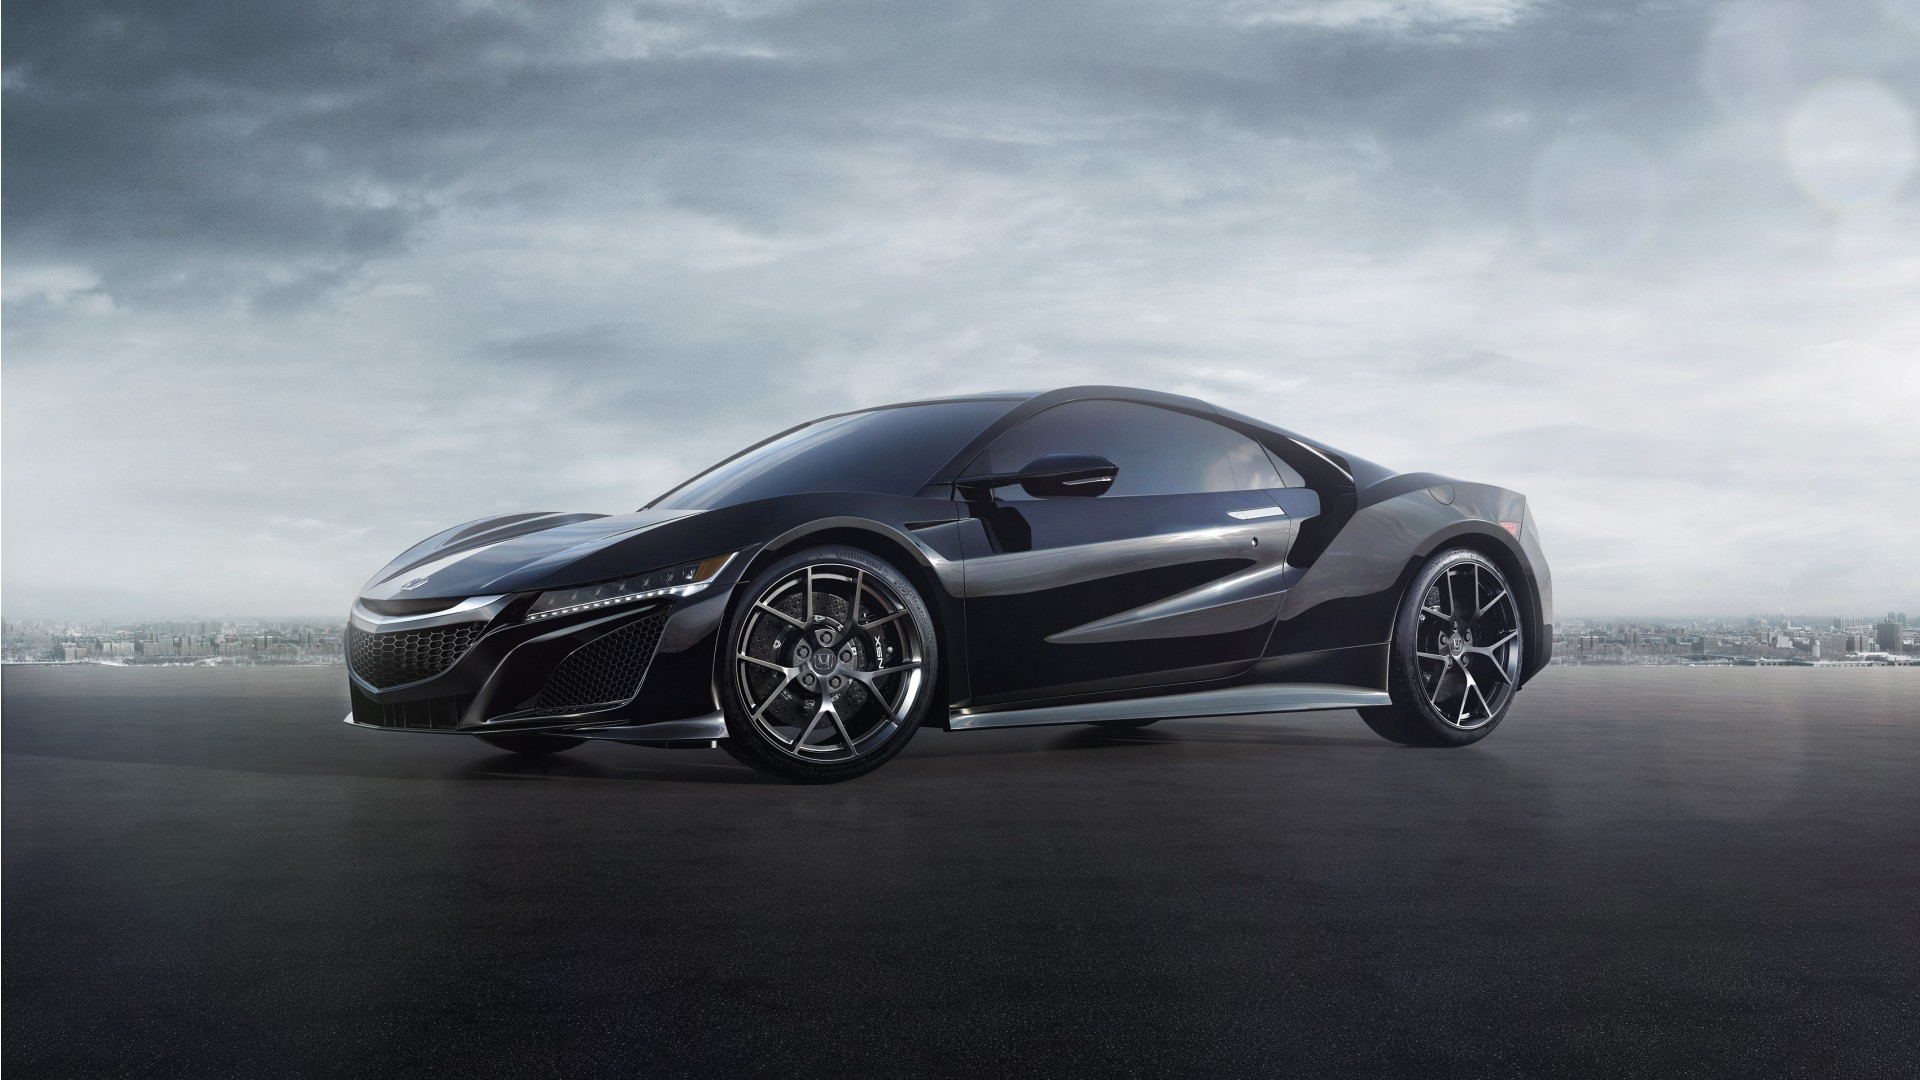 Honda NSX 2018 Wallpaper | HD Car Wallpapers | ID #9123